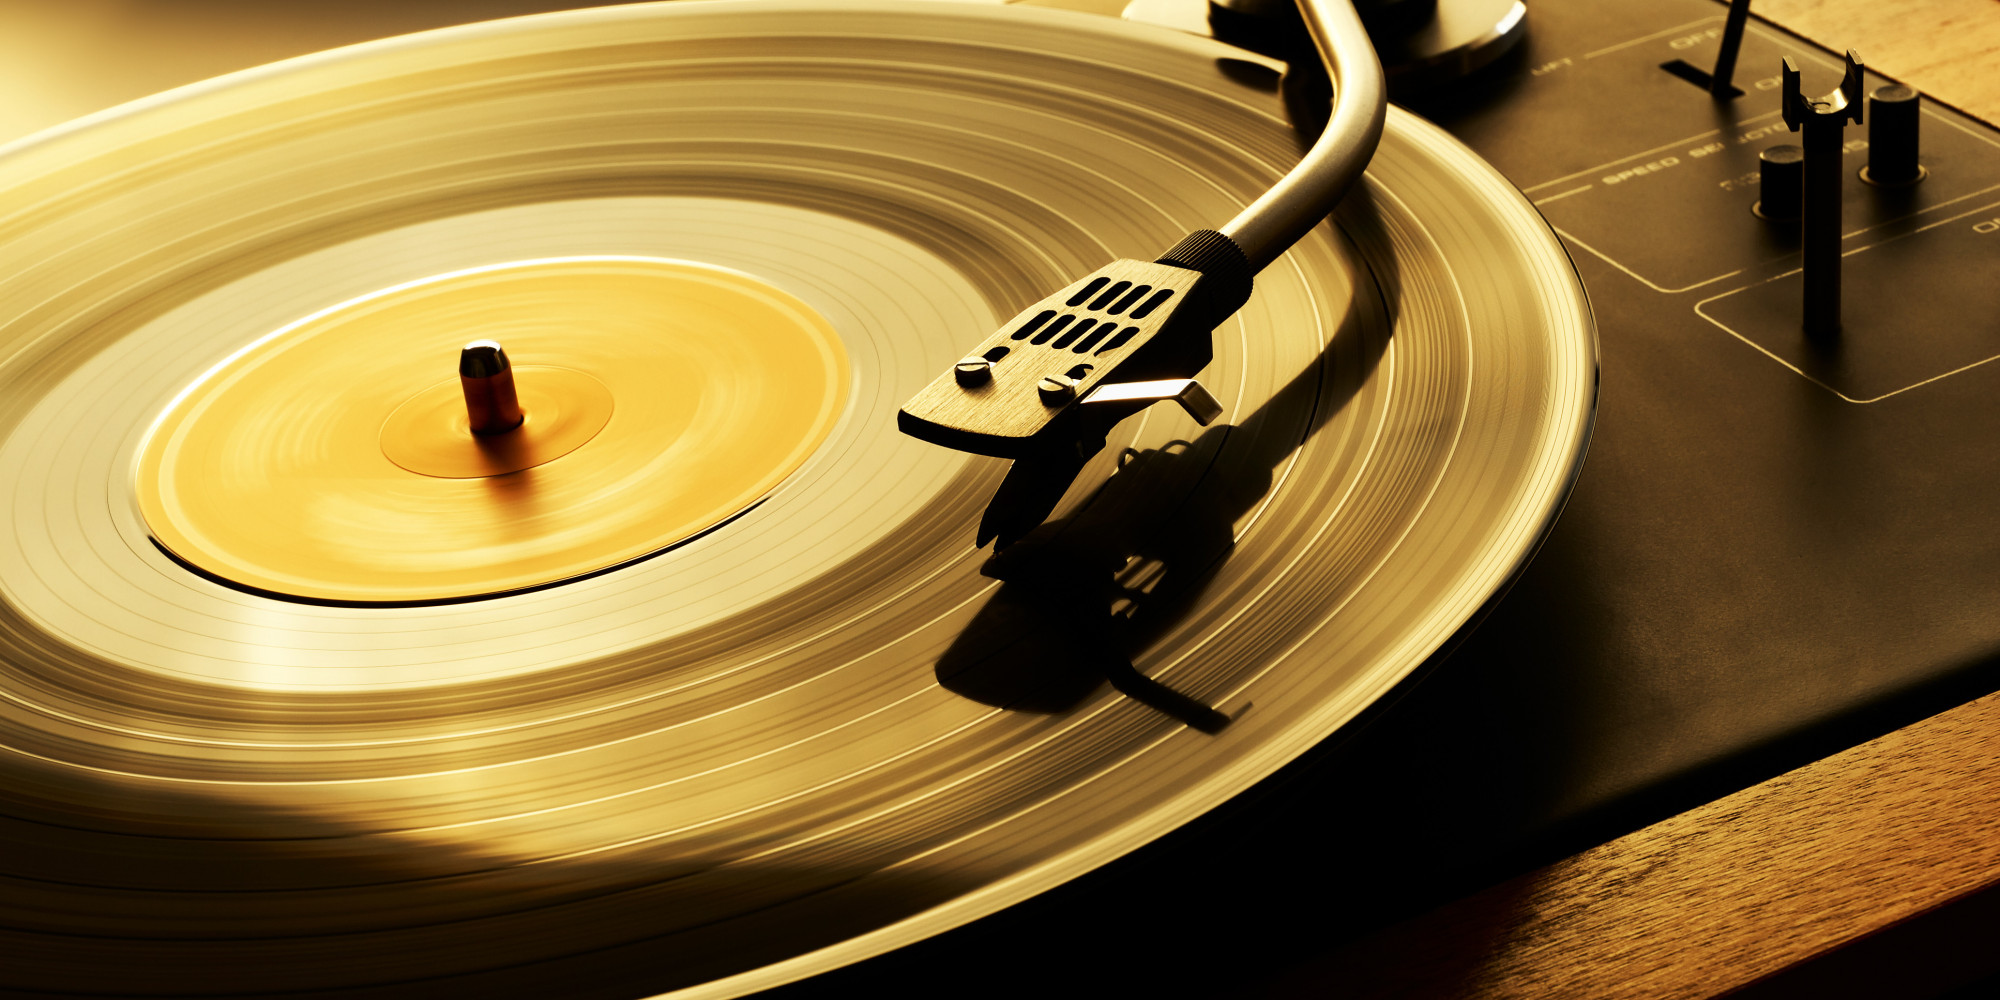 BEYOND LOCAL: Here's what demographics are driving vinyl sales up